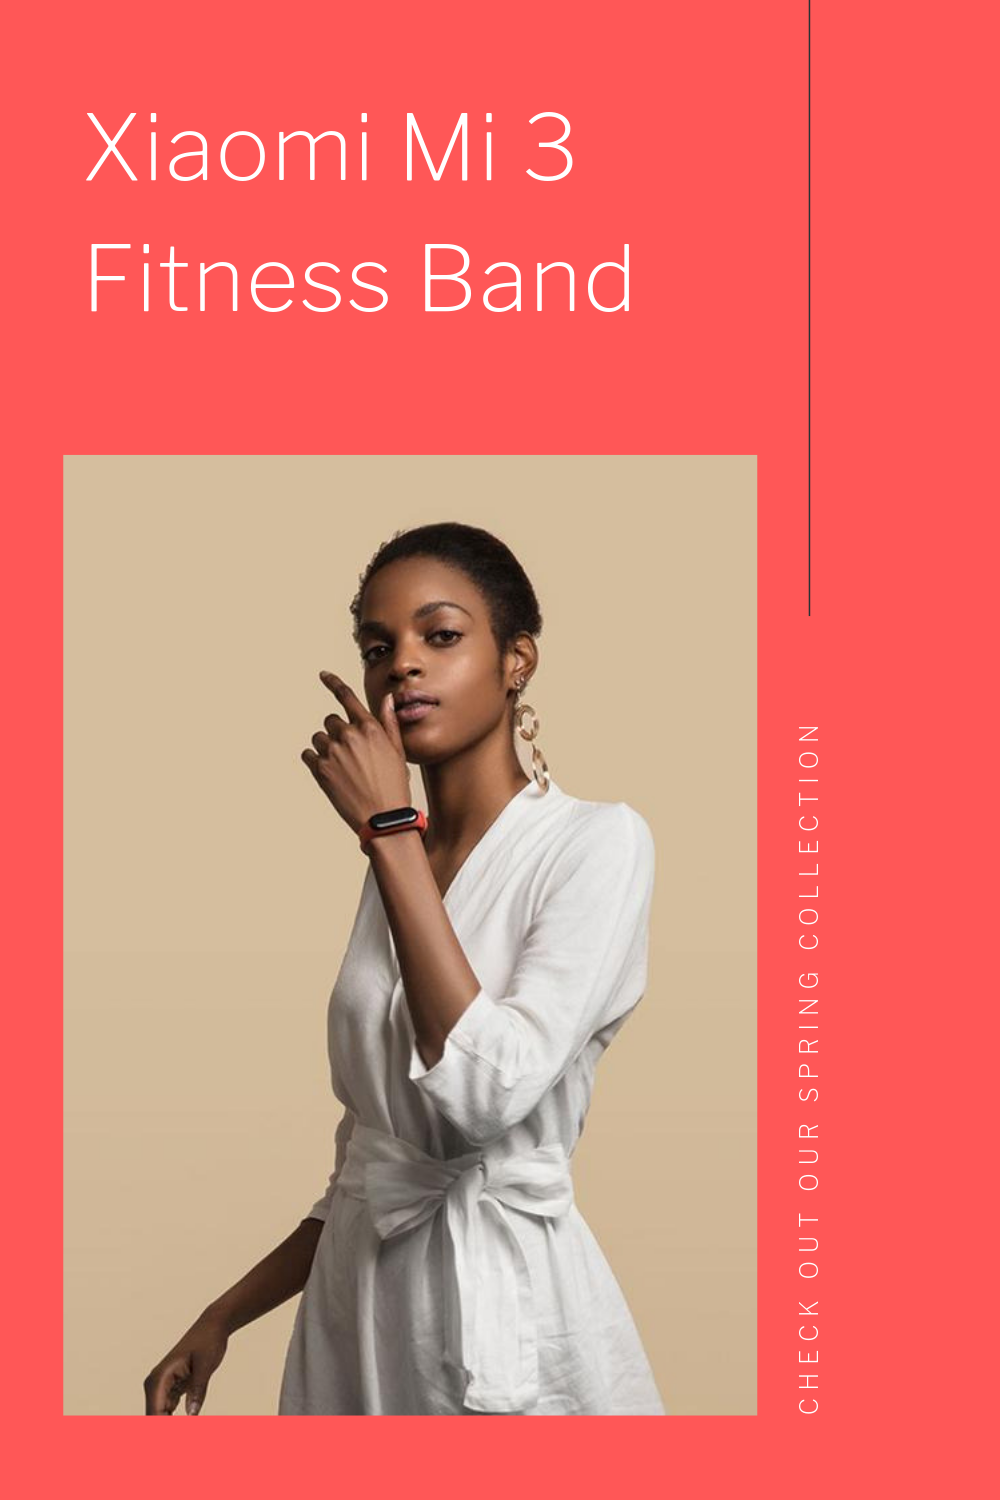 Get A Deeper Understanding Of Your Body Your Health And Your Progress With Xiaomi Mi 3 Fitness Band Fi Band Workout Recovery Workout Health And Fitness Tips